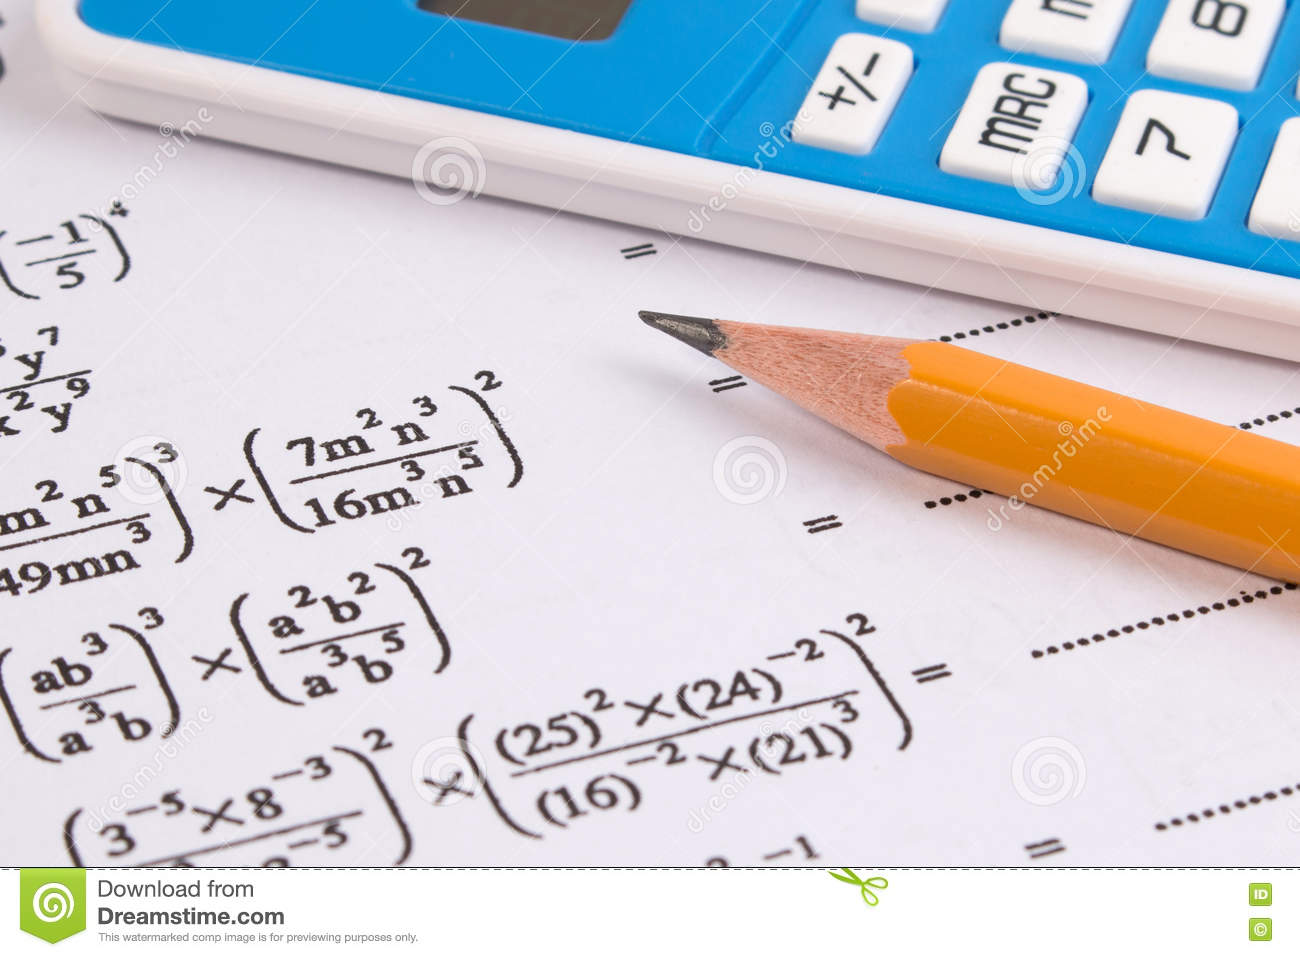 help me solve math homework do my math homework services at affordable prices right now teaching a touch of twang